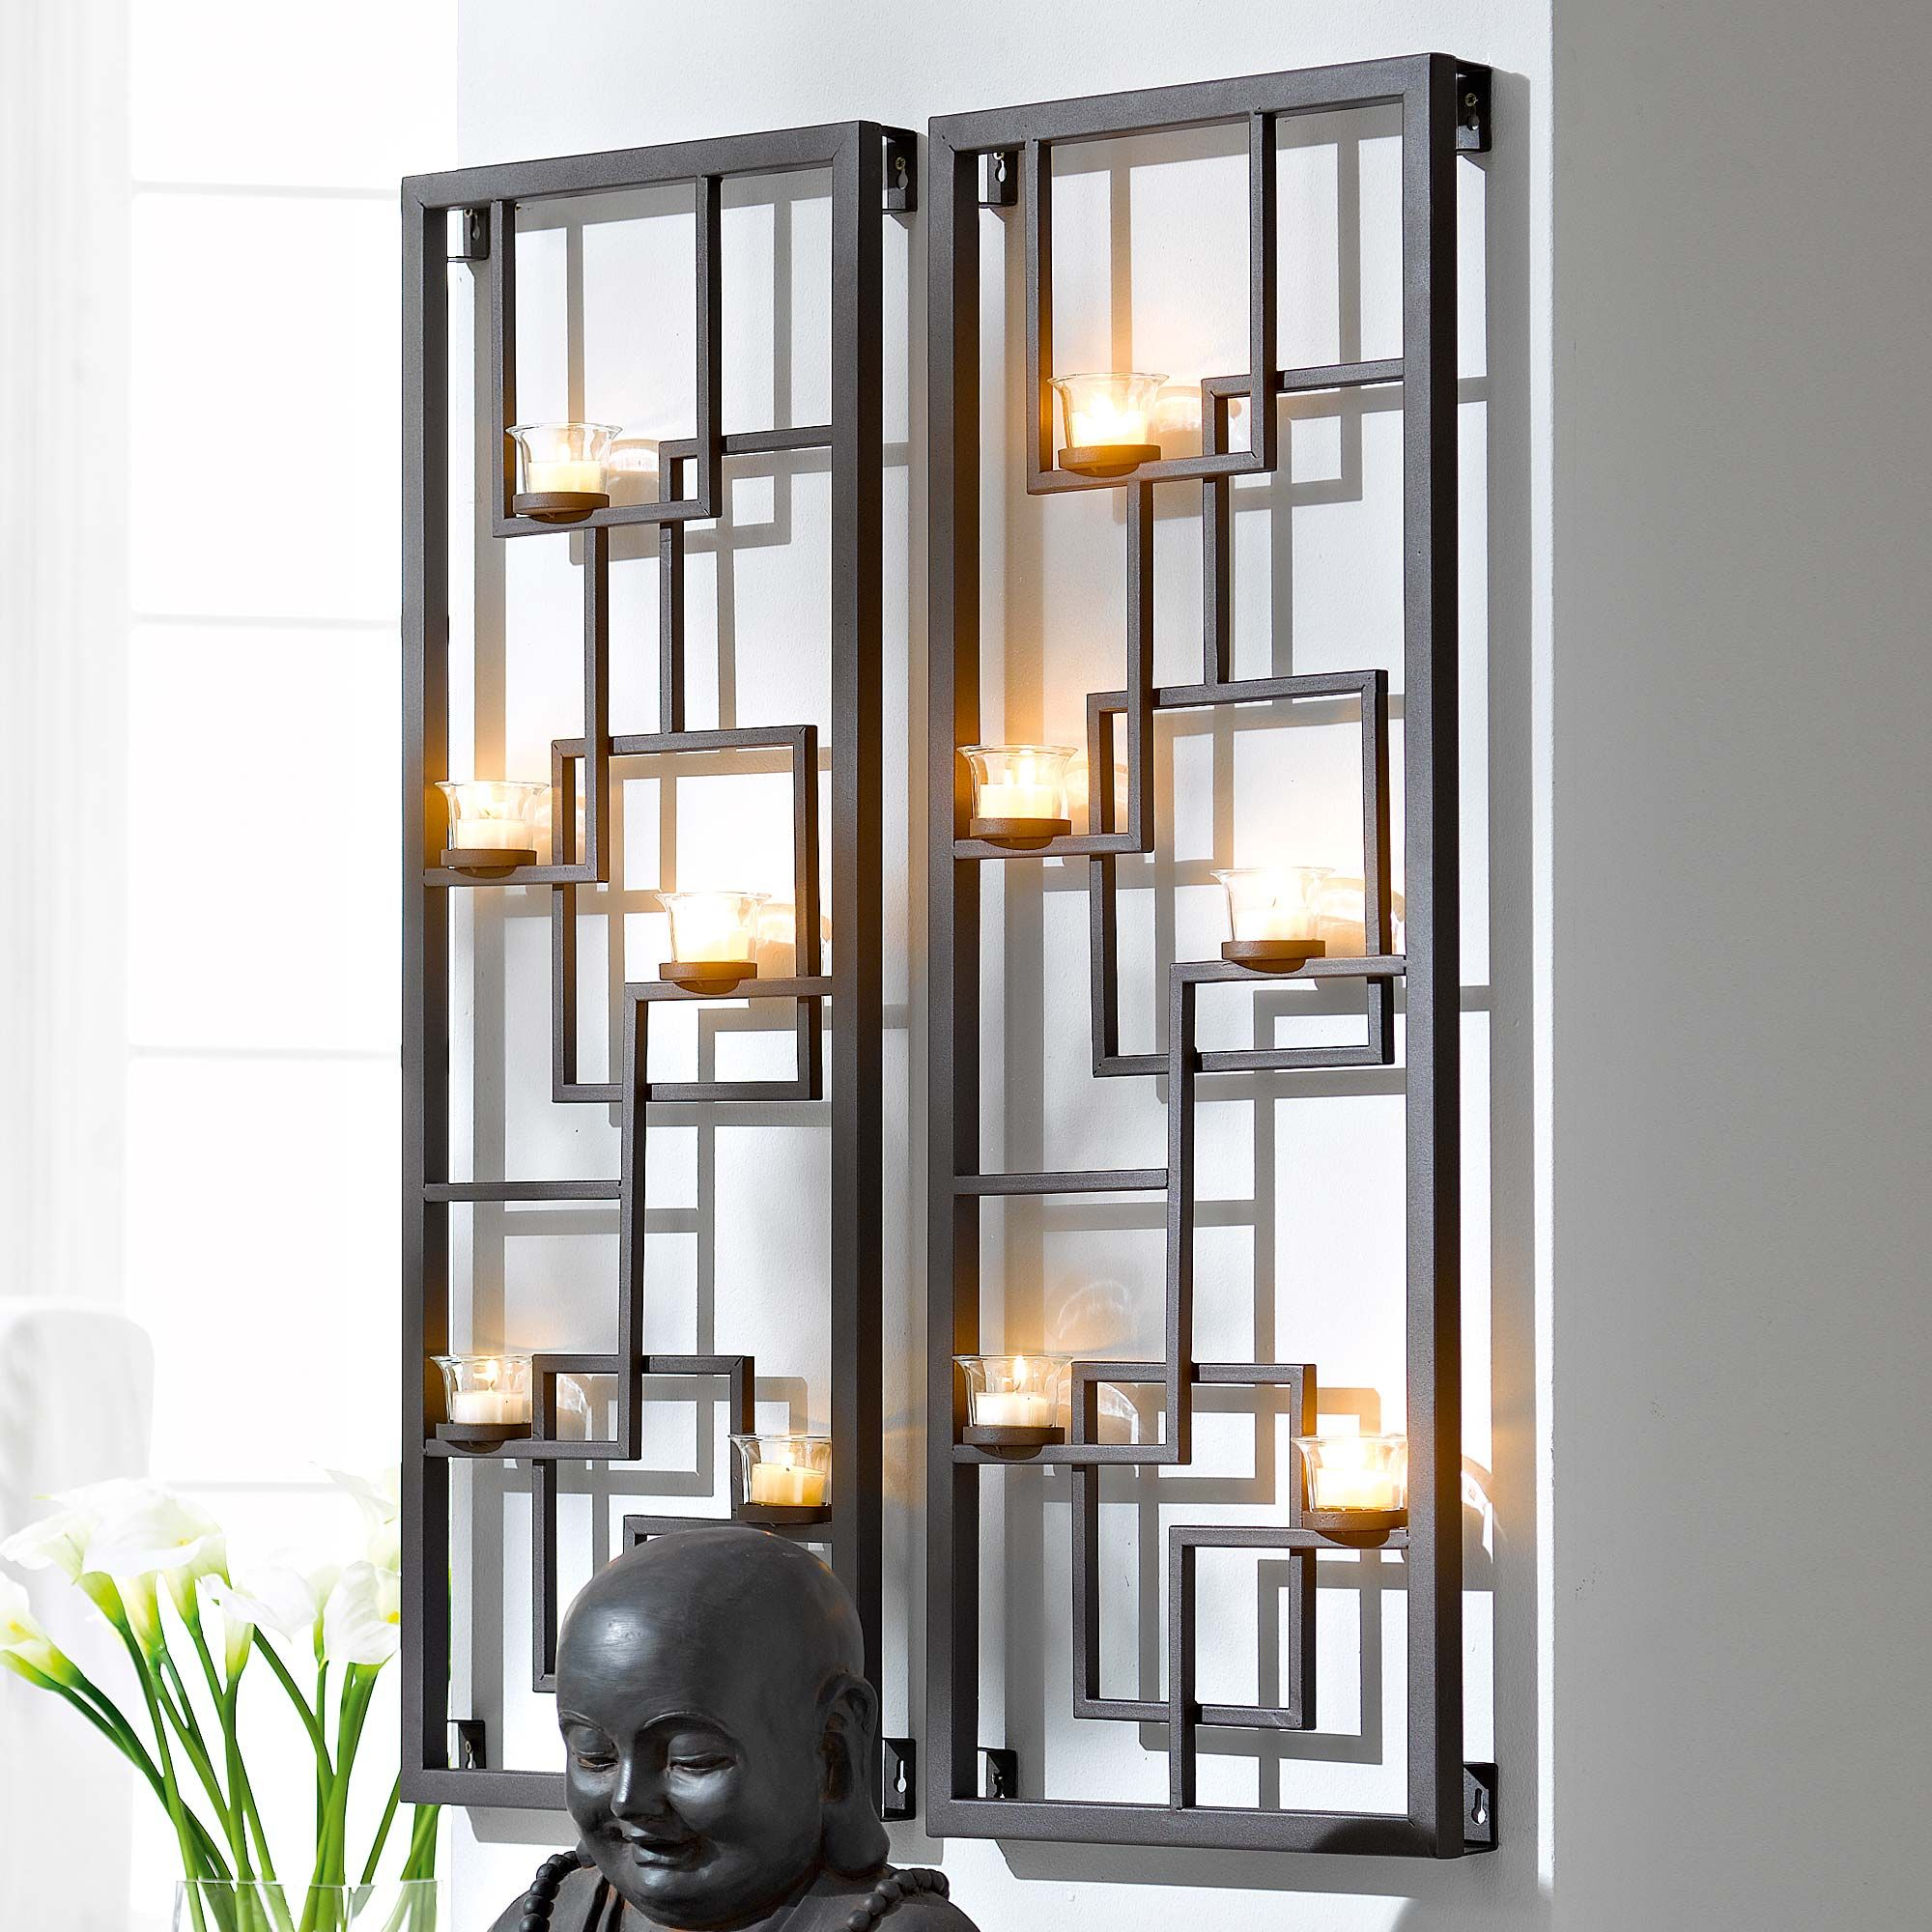 Cool and modern candle wall decor decorating ideas pinterest cool and modern candle wall decor mozeypictures Image collections